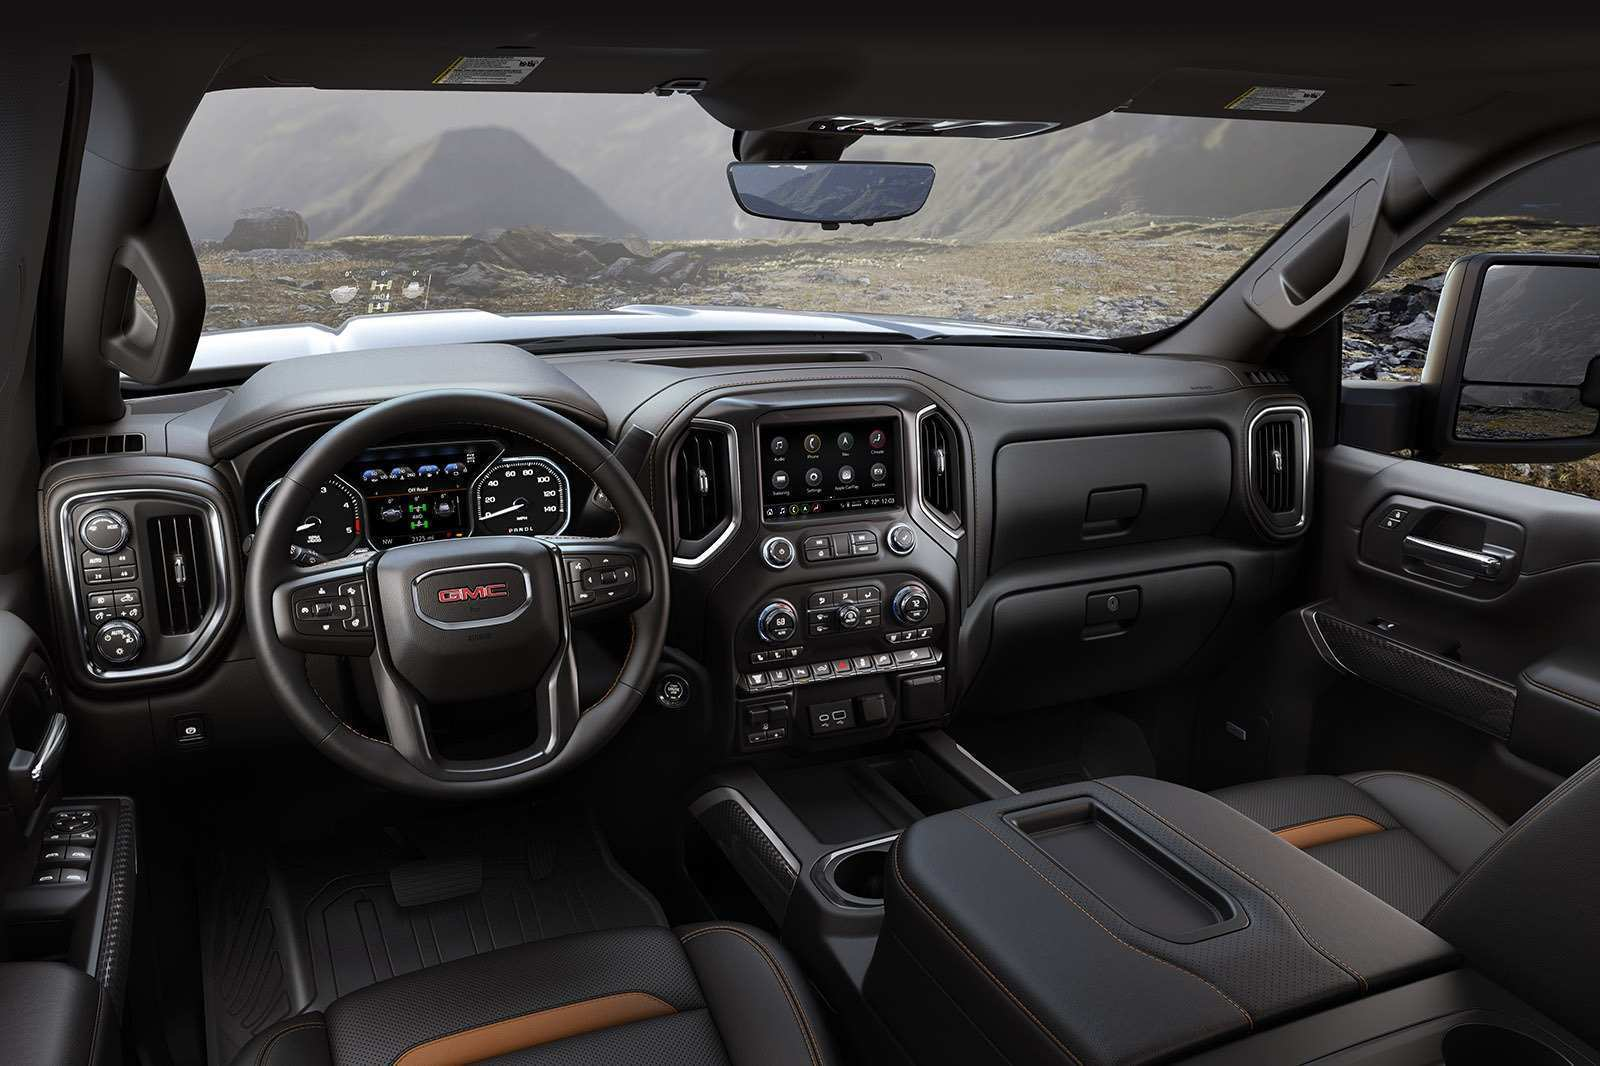 84 A 2020 GMC Sierra Hd Release Date Wallpaper